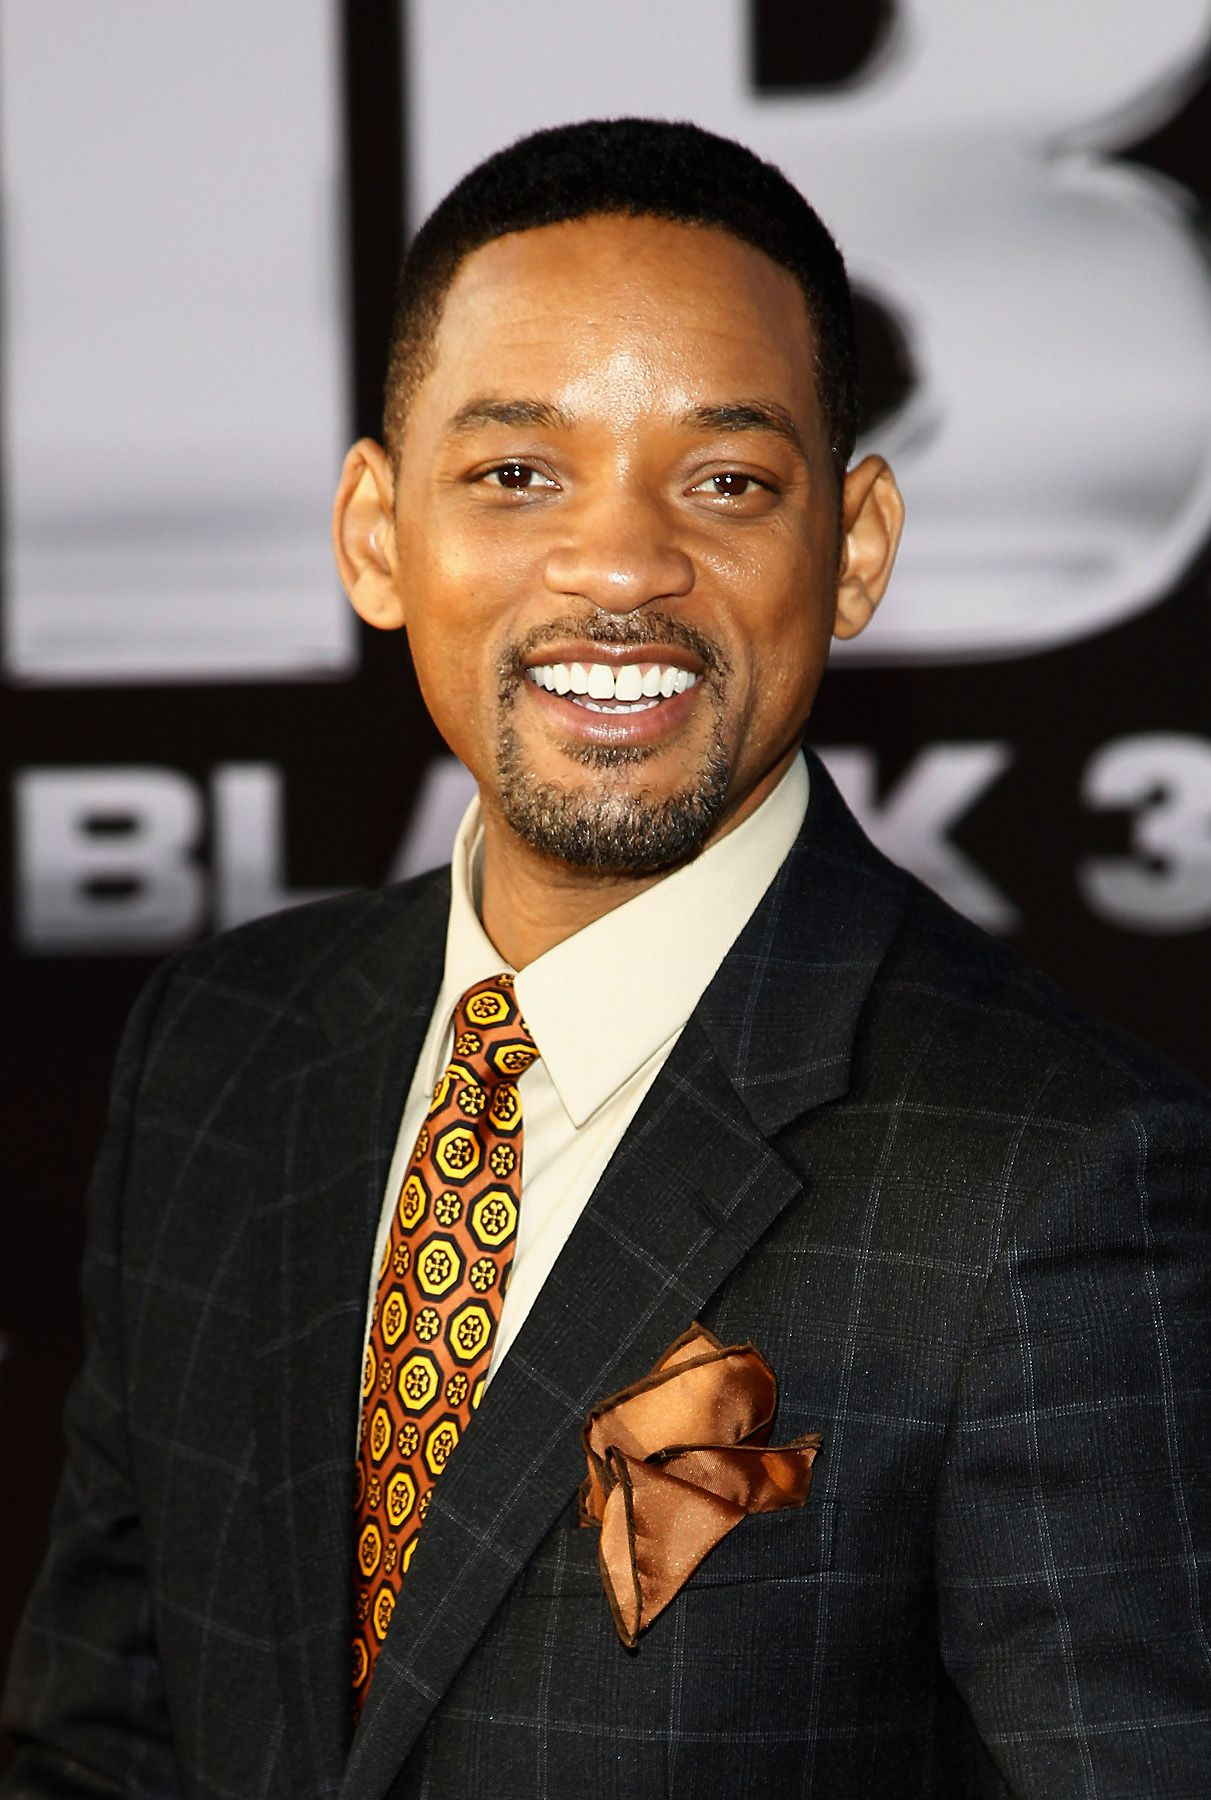 Hollywood's Highest Paid Black Male Actor